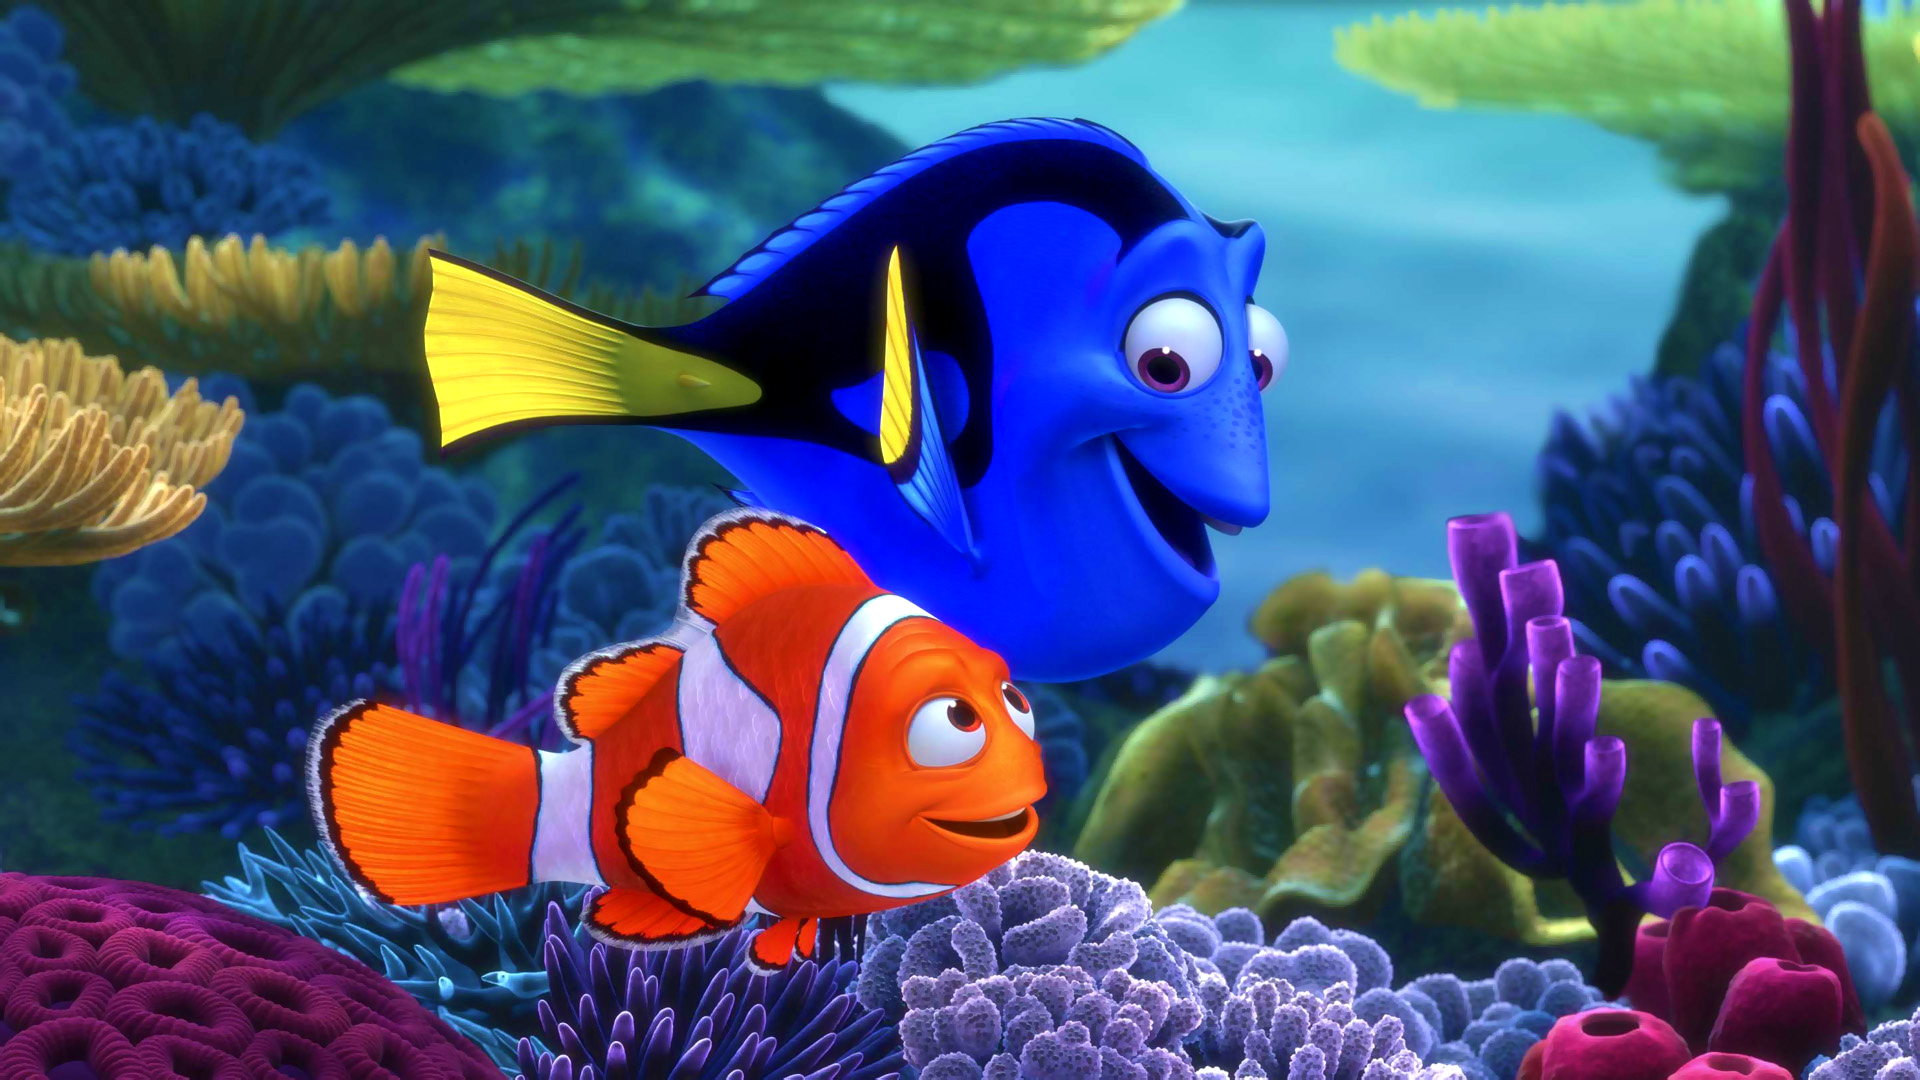 finding-nemo-1920%C3%971080-wallpaper-wp3405538